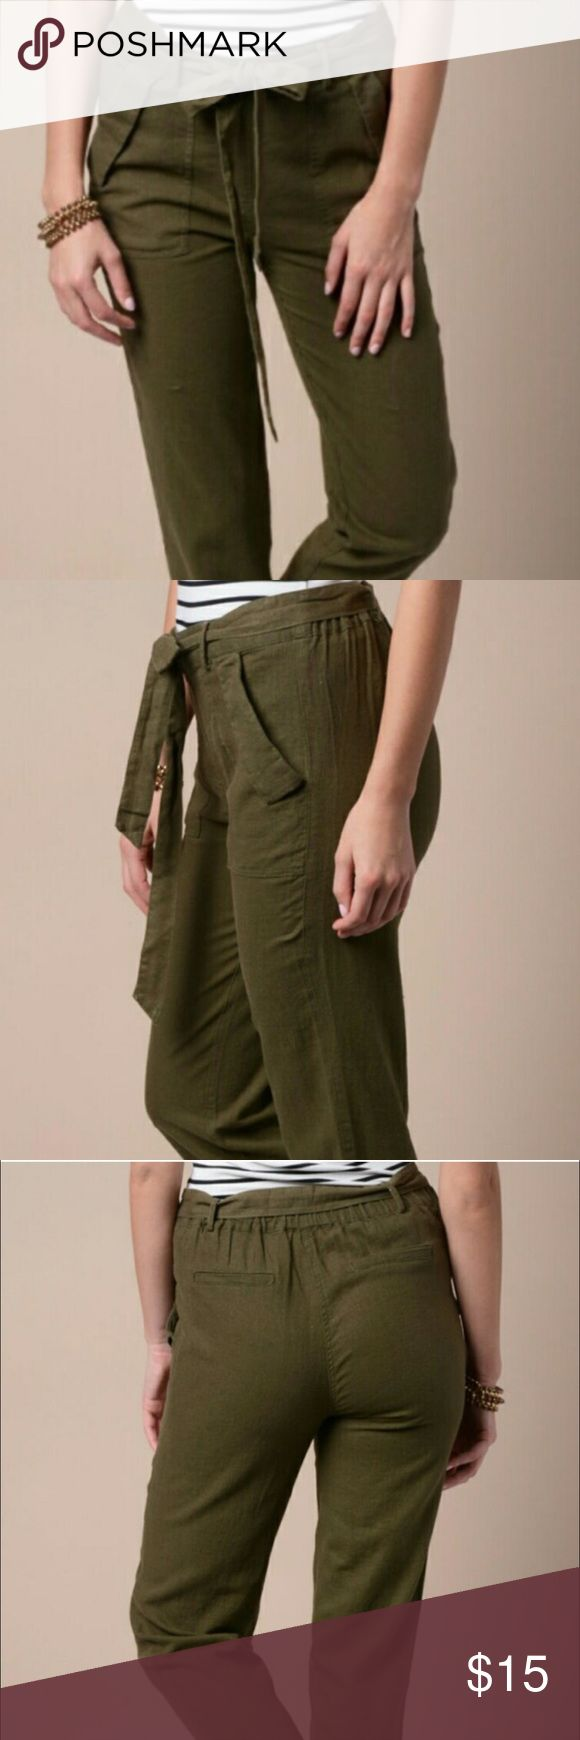 Olive green chino style pants 🎉BOGO SALE 🎉🎉 Green chino style pant very comfortable. Matching fabric belt. Front side pockets 🎉BOGO purchase these and get one item if equal or lower price FREE 🎉🎉 Pants Straight Leg